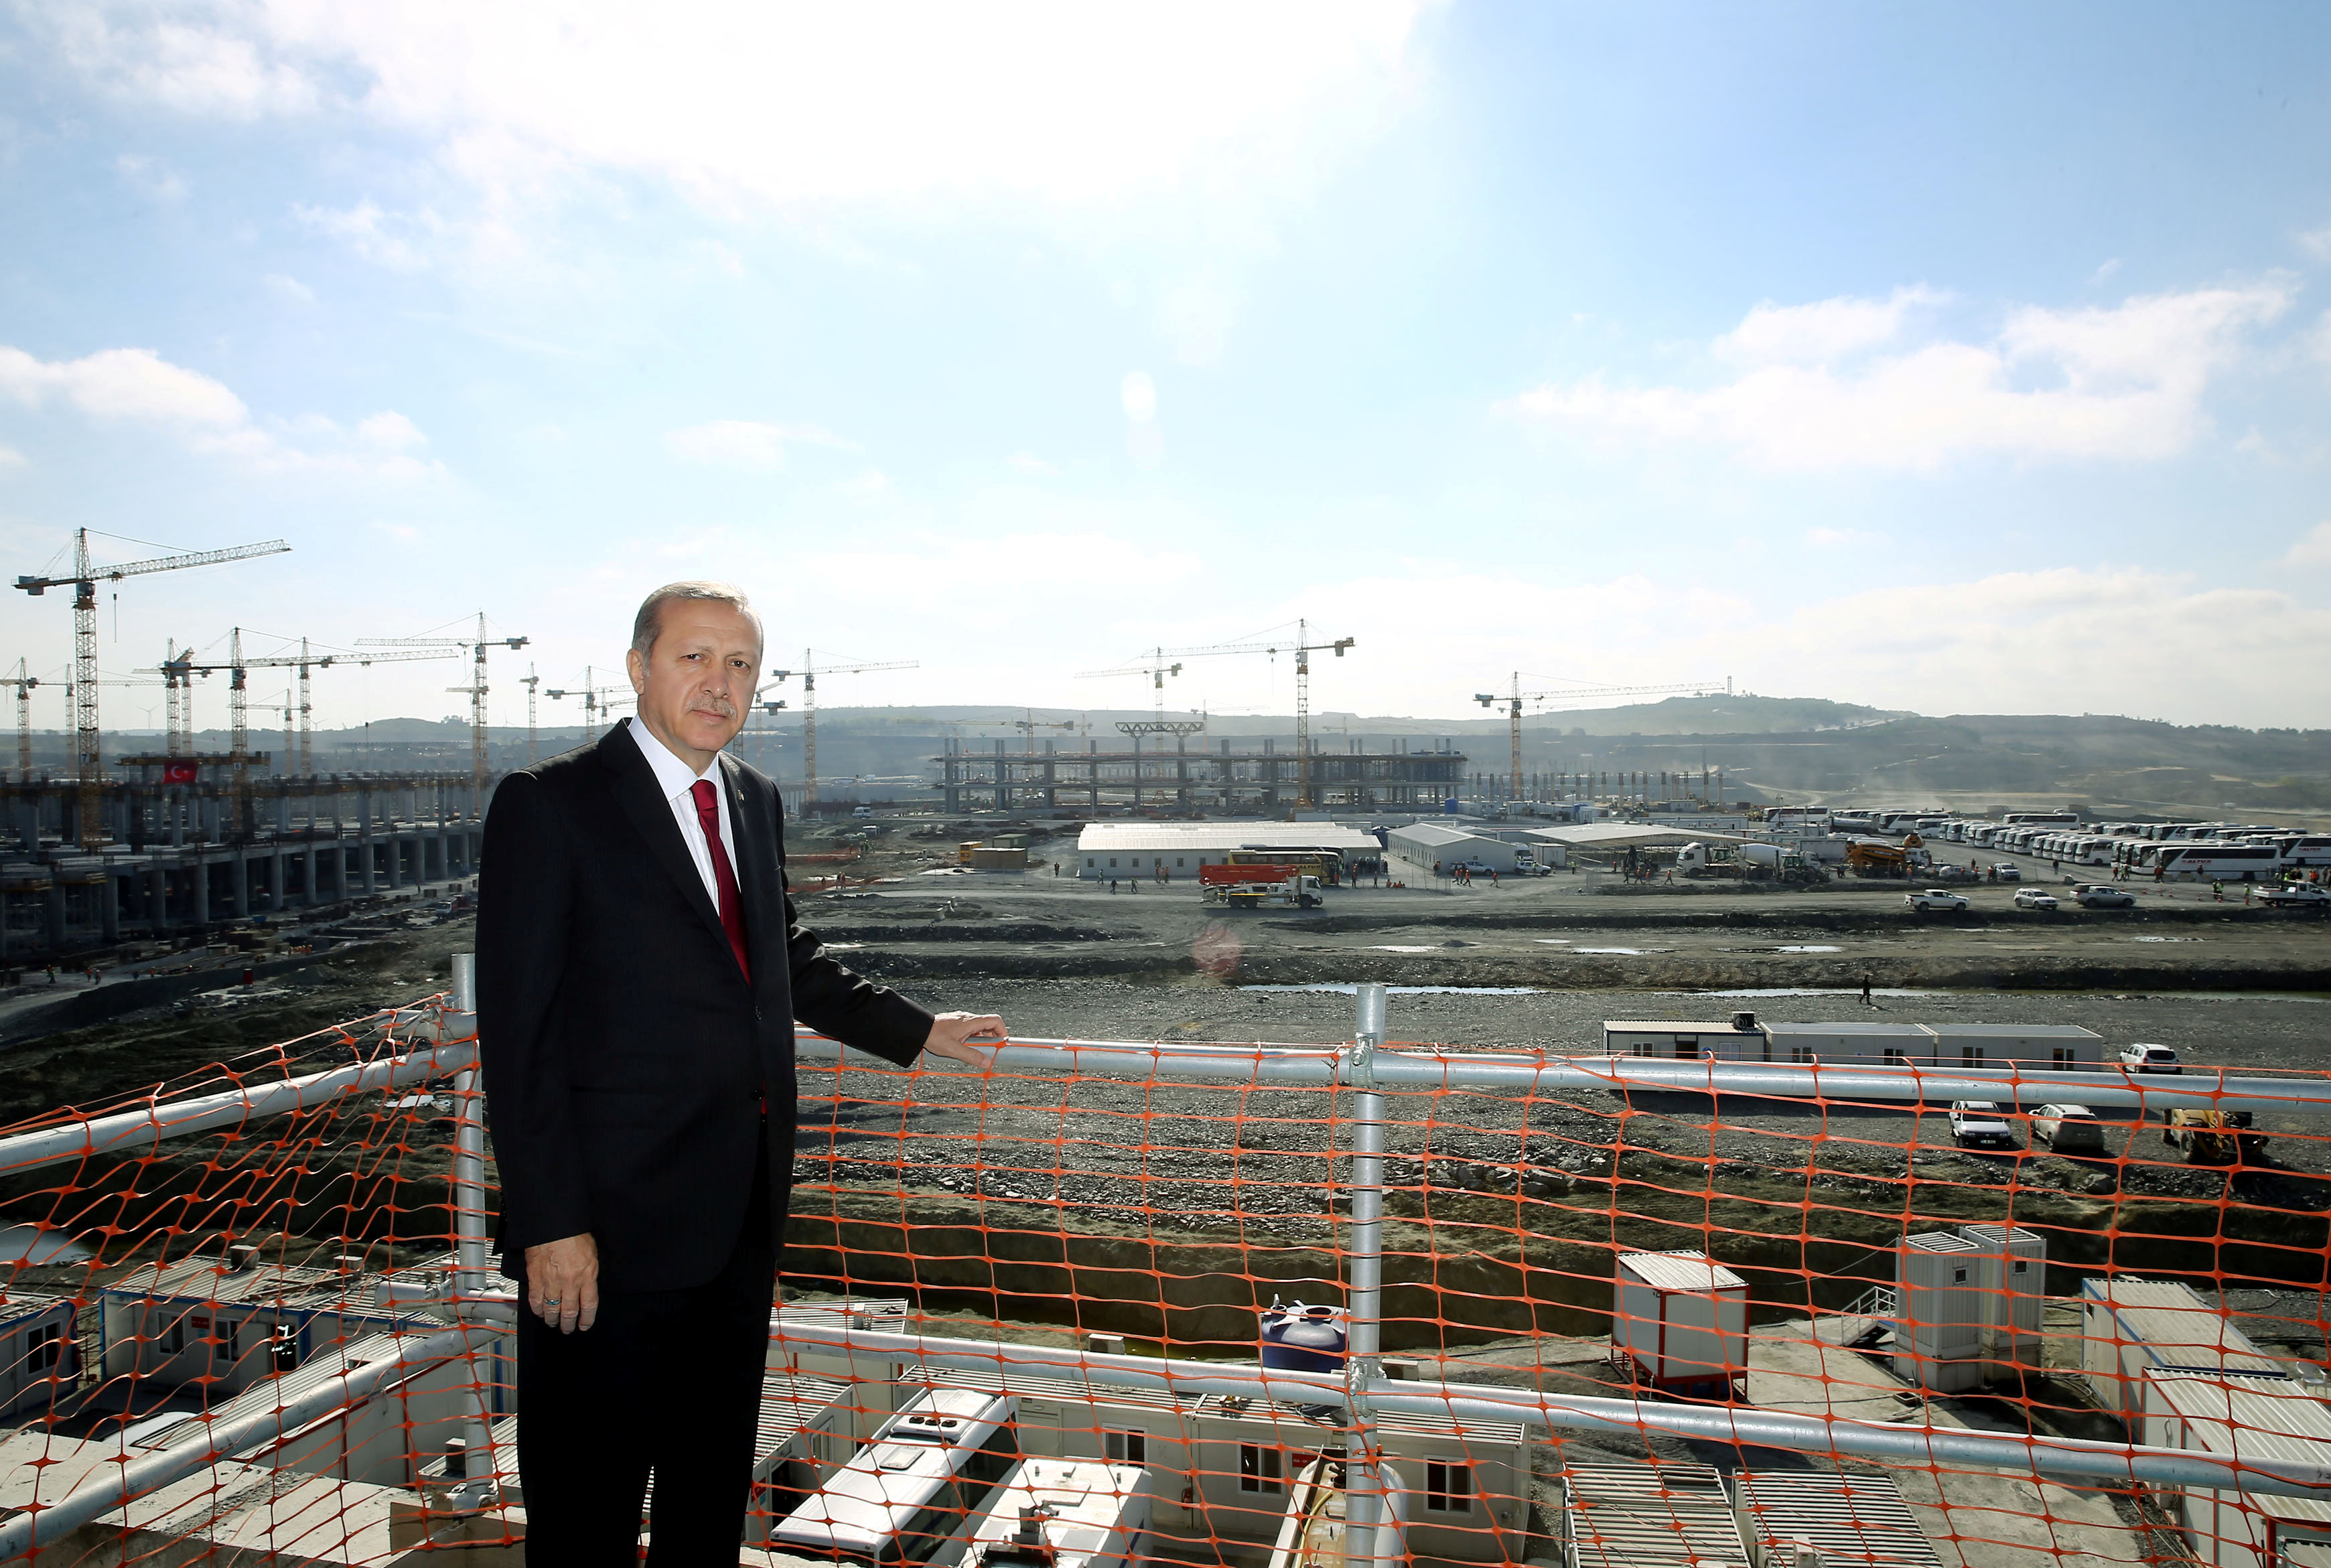 Turkish President Tayyip Erdogan is pictured during his visit to the construction site of the city's third airport in Istanbul, Turkey May 9, 2016.